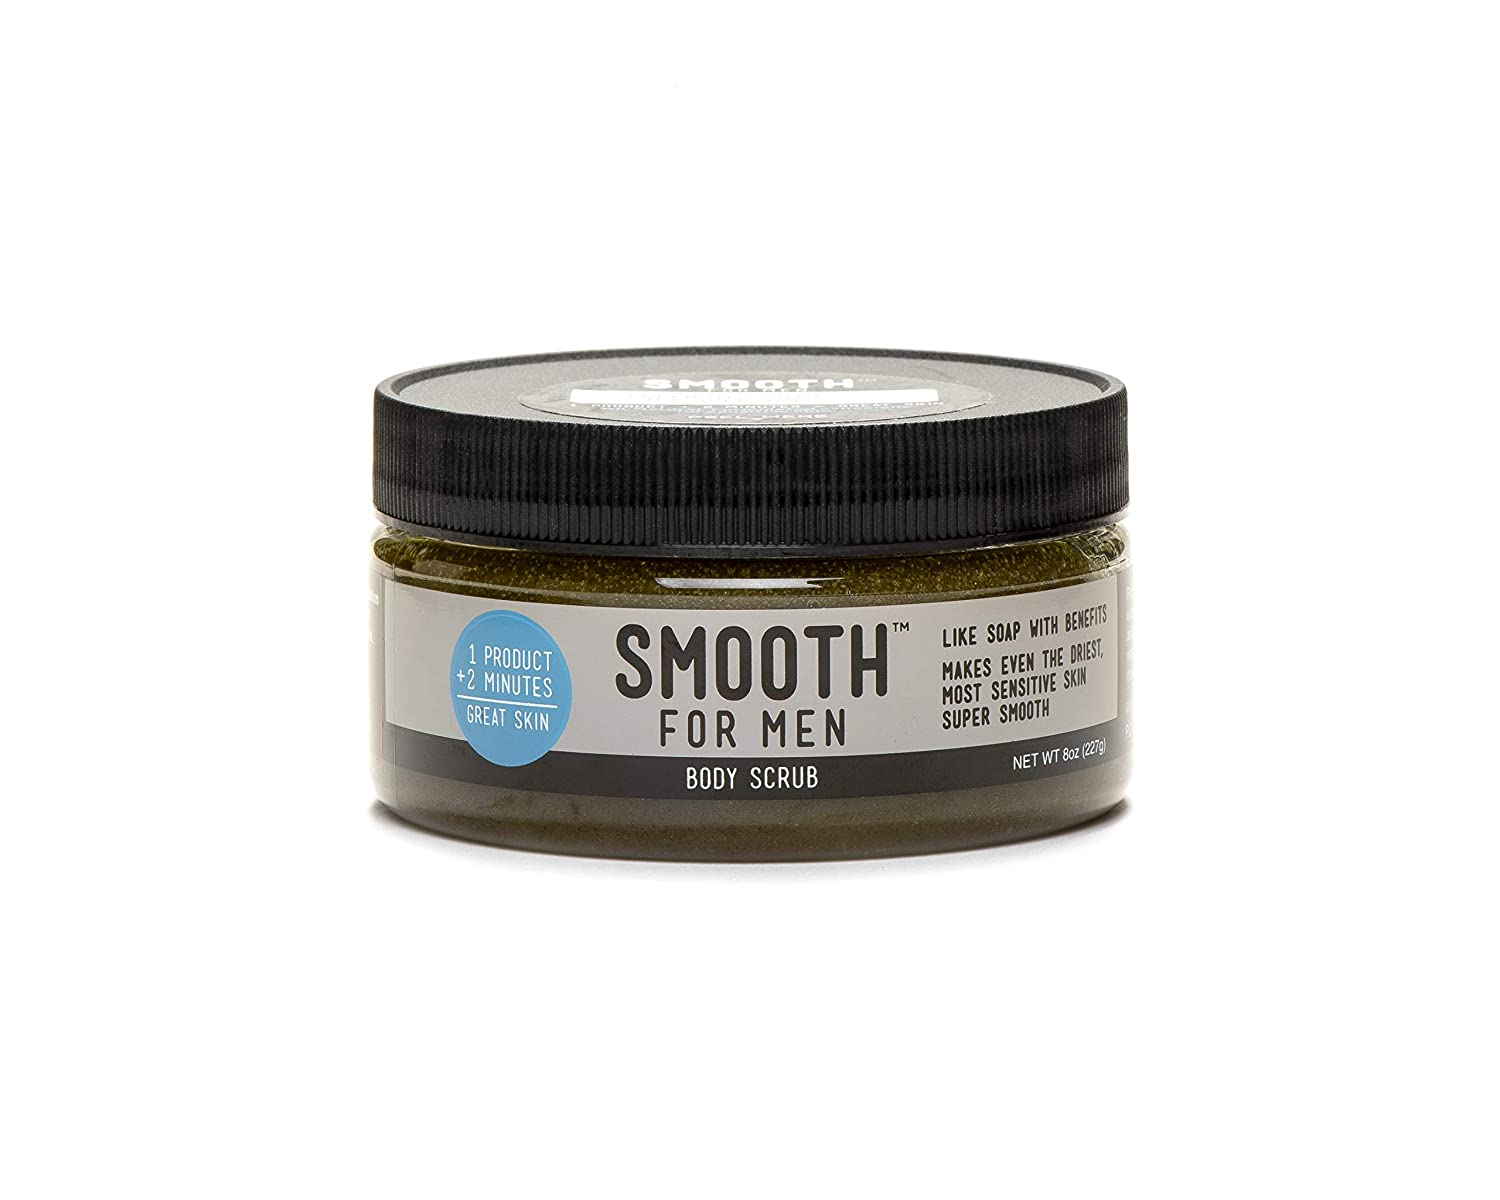 Smooth for Men Green Tea with Tea Tree Oil Body Cleansing Exfoliating Moisturizer - For Sensitive Skin - Oily Skin, Acne Prone Skin